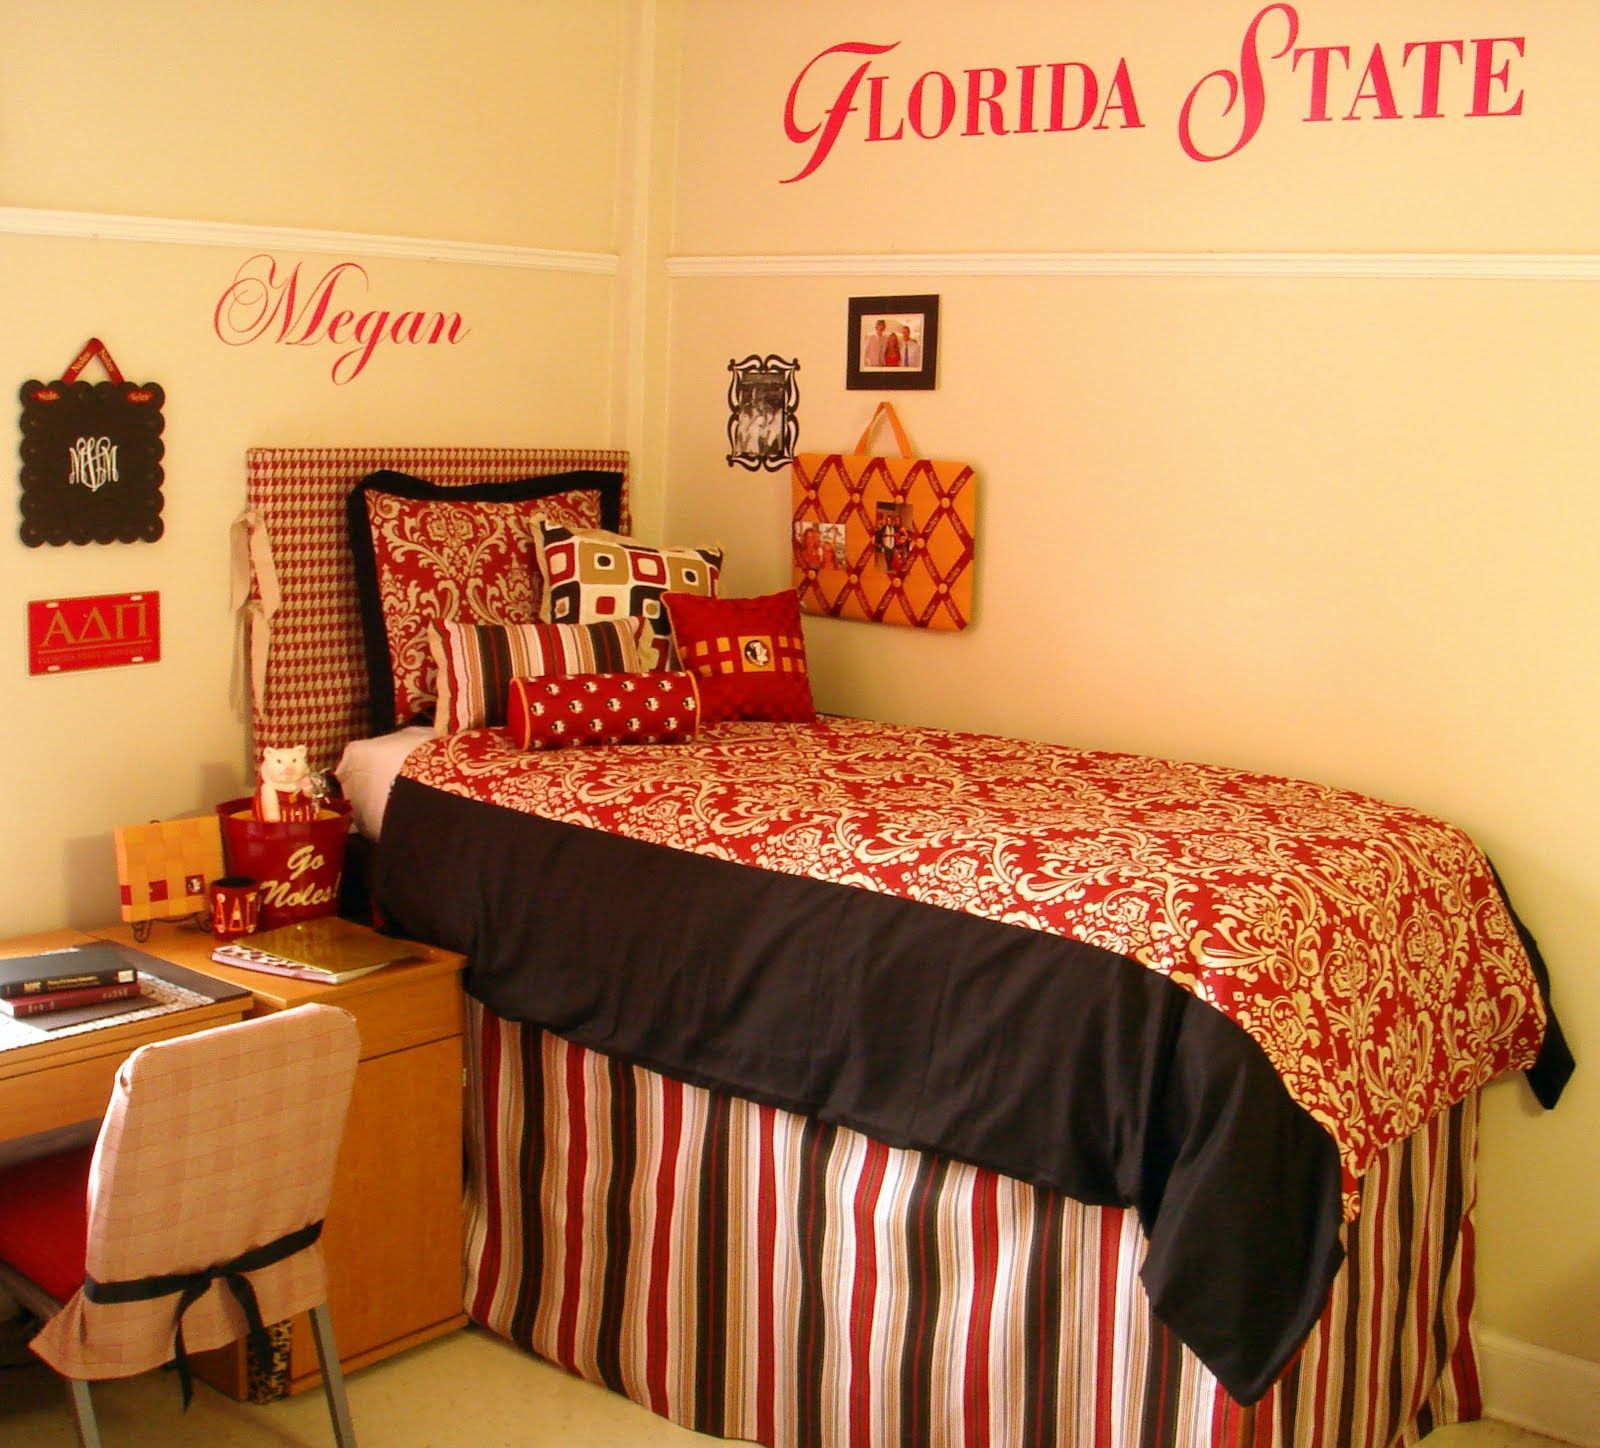 Cute Except It Would Have To Be Georgia Not Florida ;) Decor 2 Ur Door: How  Do I Decorate My College Dorm Room?   Dorm Room Bedding And Decor, ...